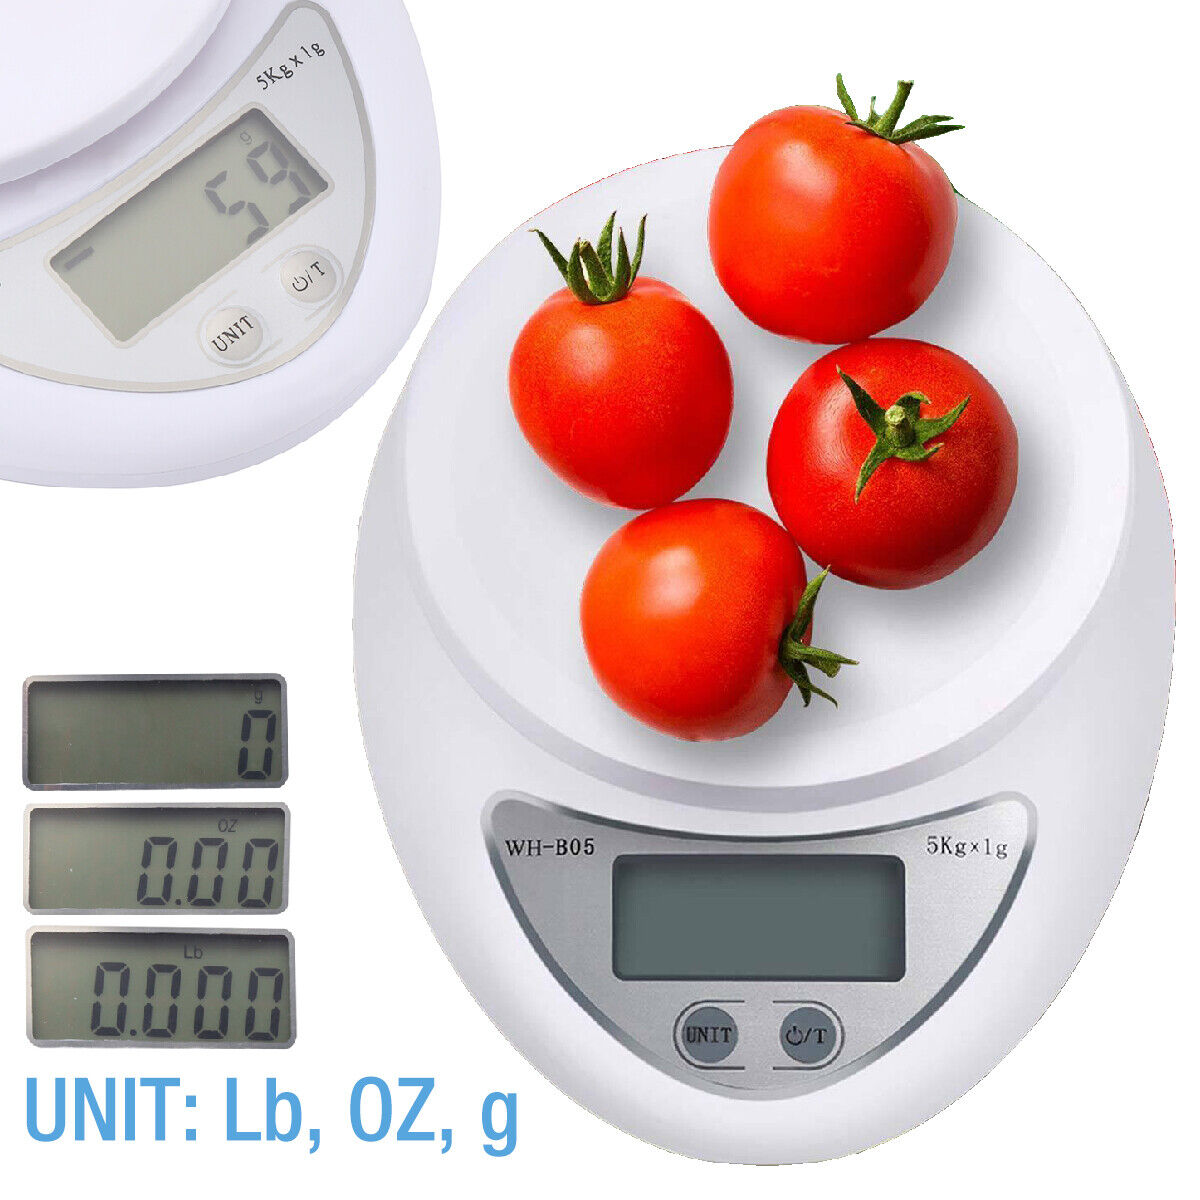 Digital Kitchen Food Cooking Scale Weigh in Pounds, Grams, O